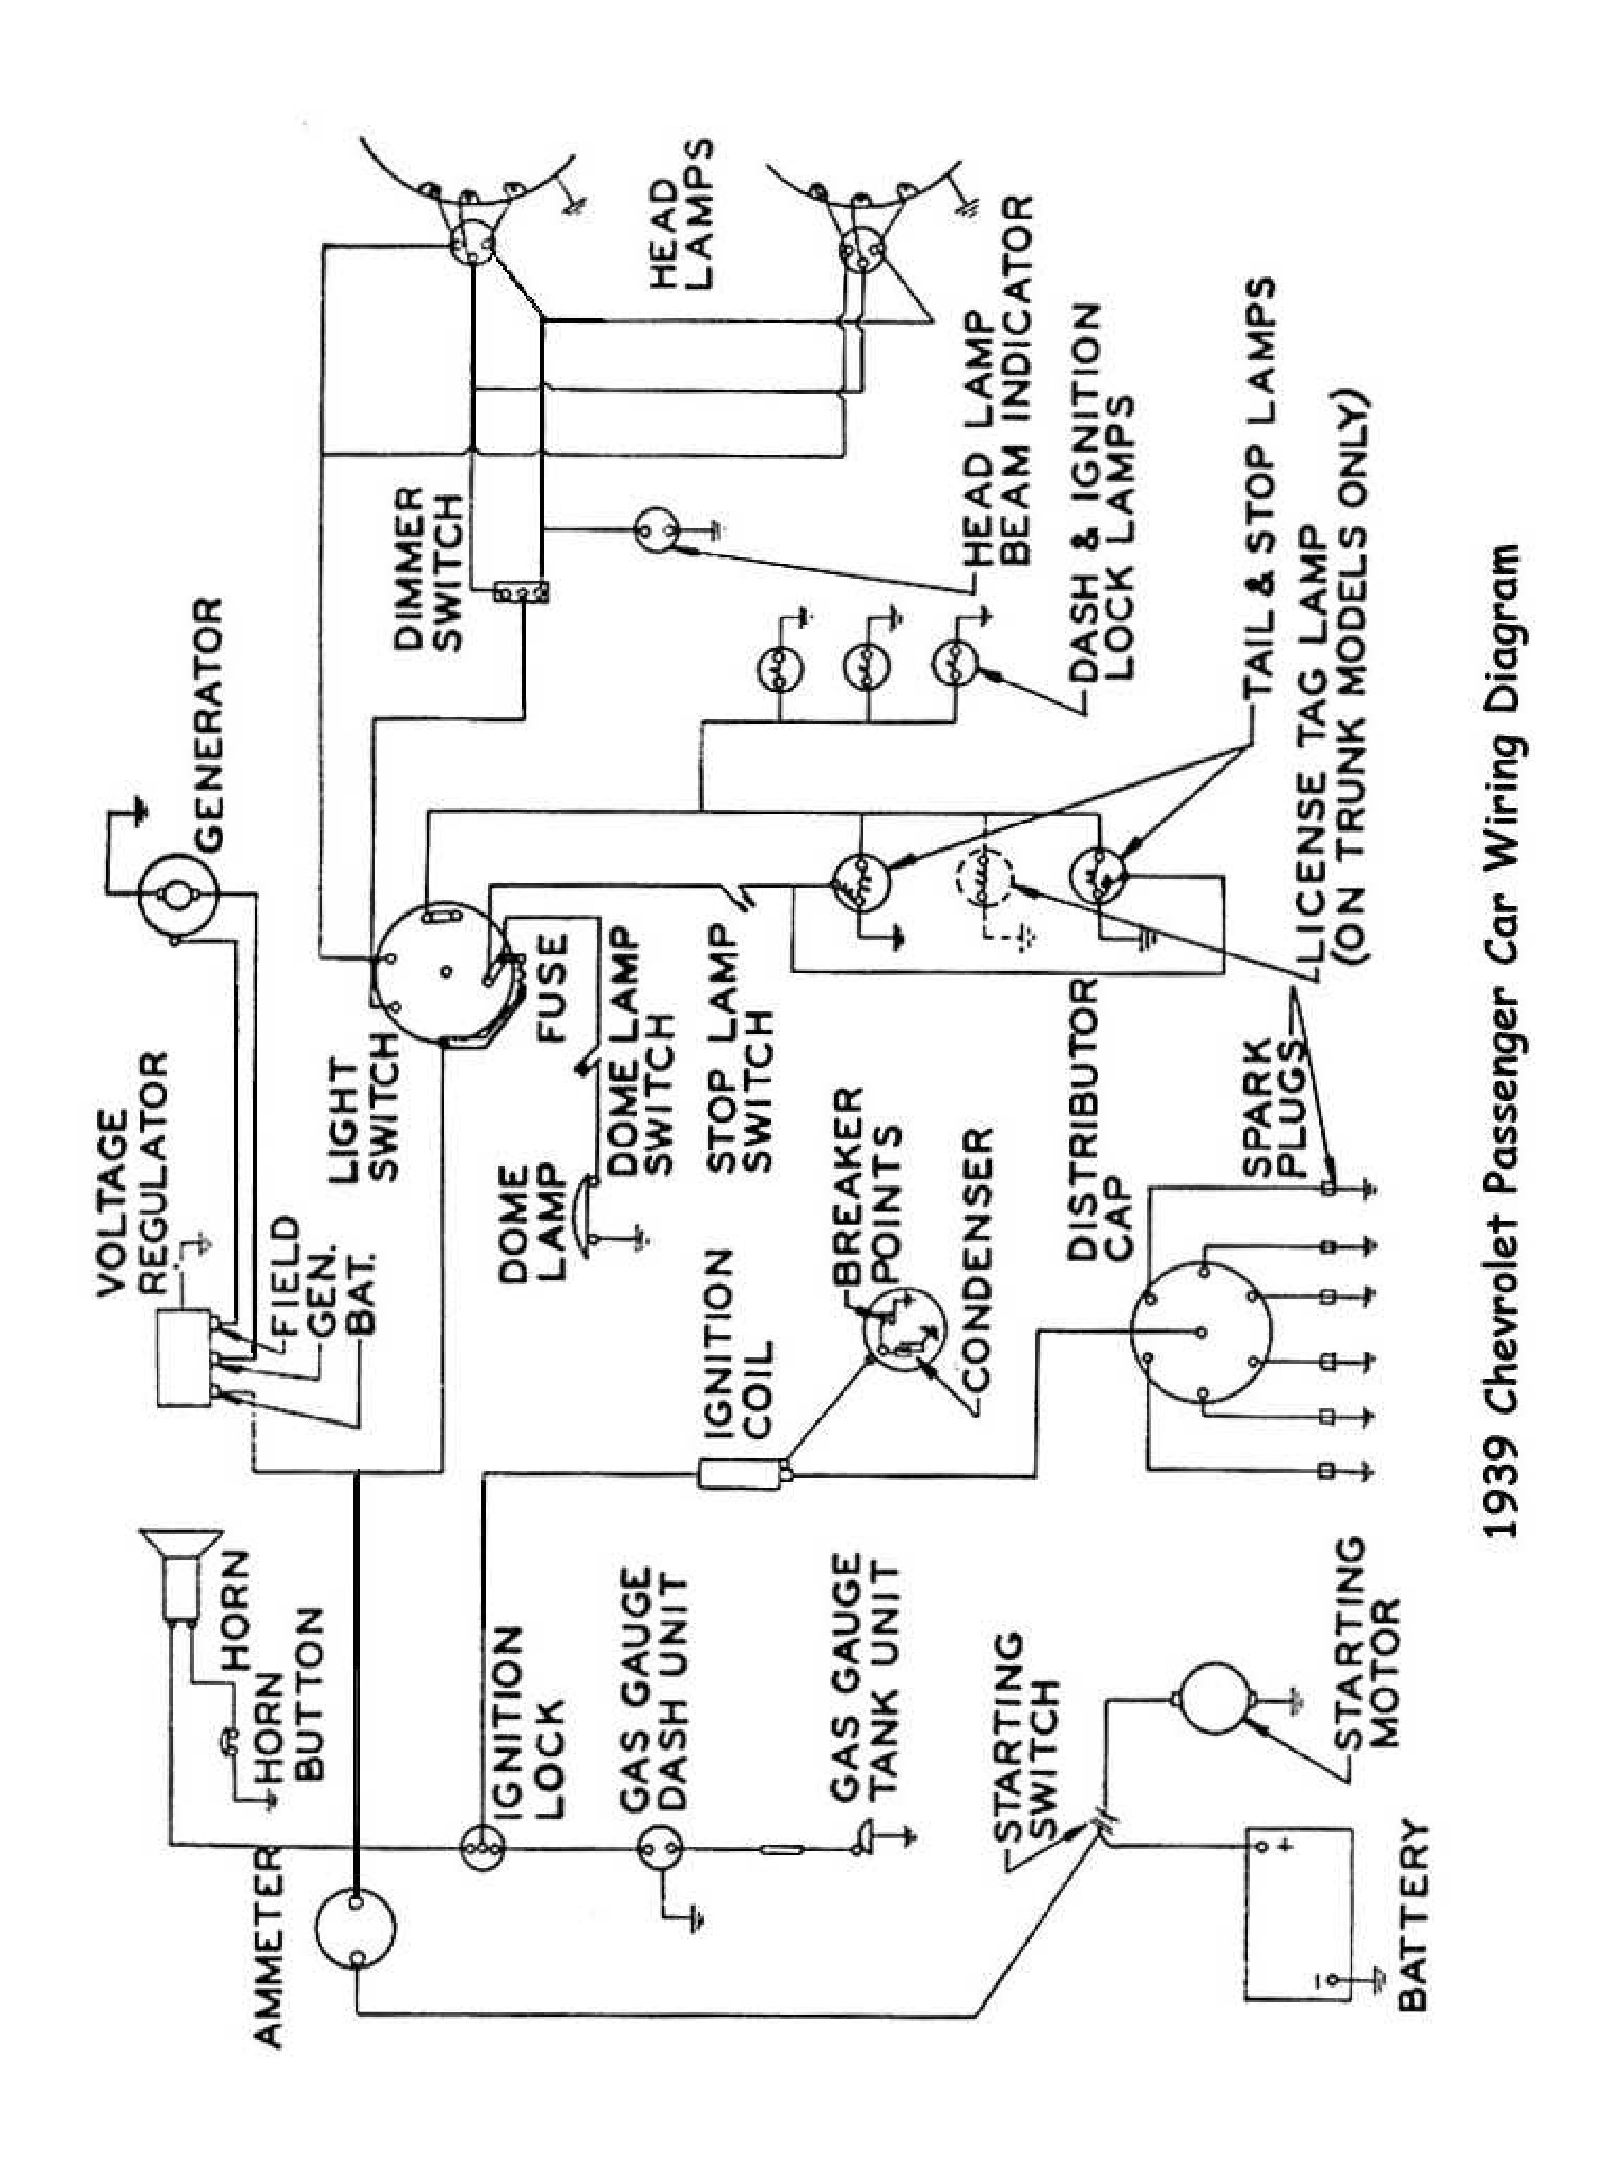 1941 Dodge Truck Dashboard Diagram Everything About Wiring Diagram